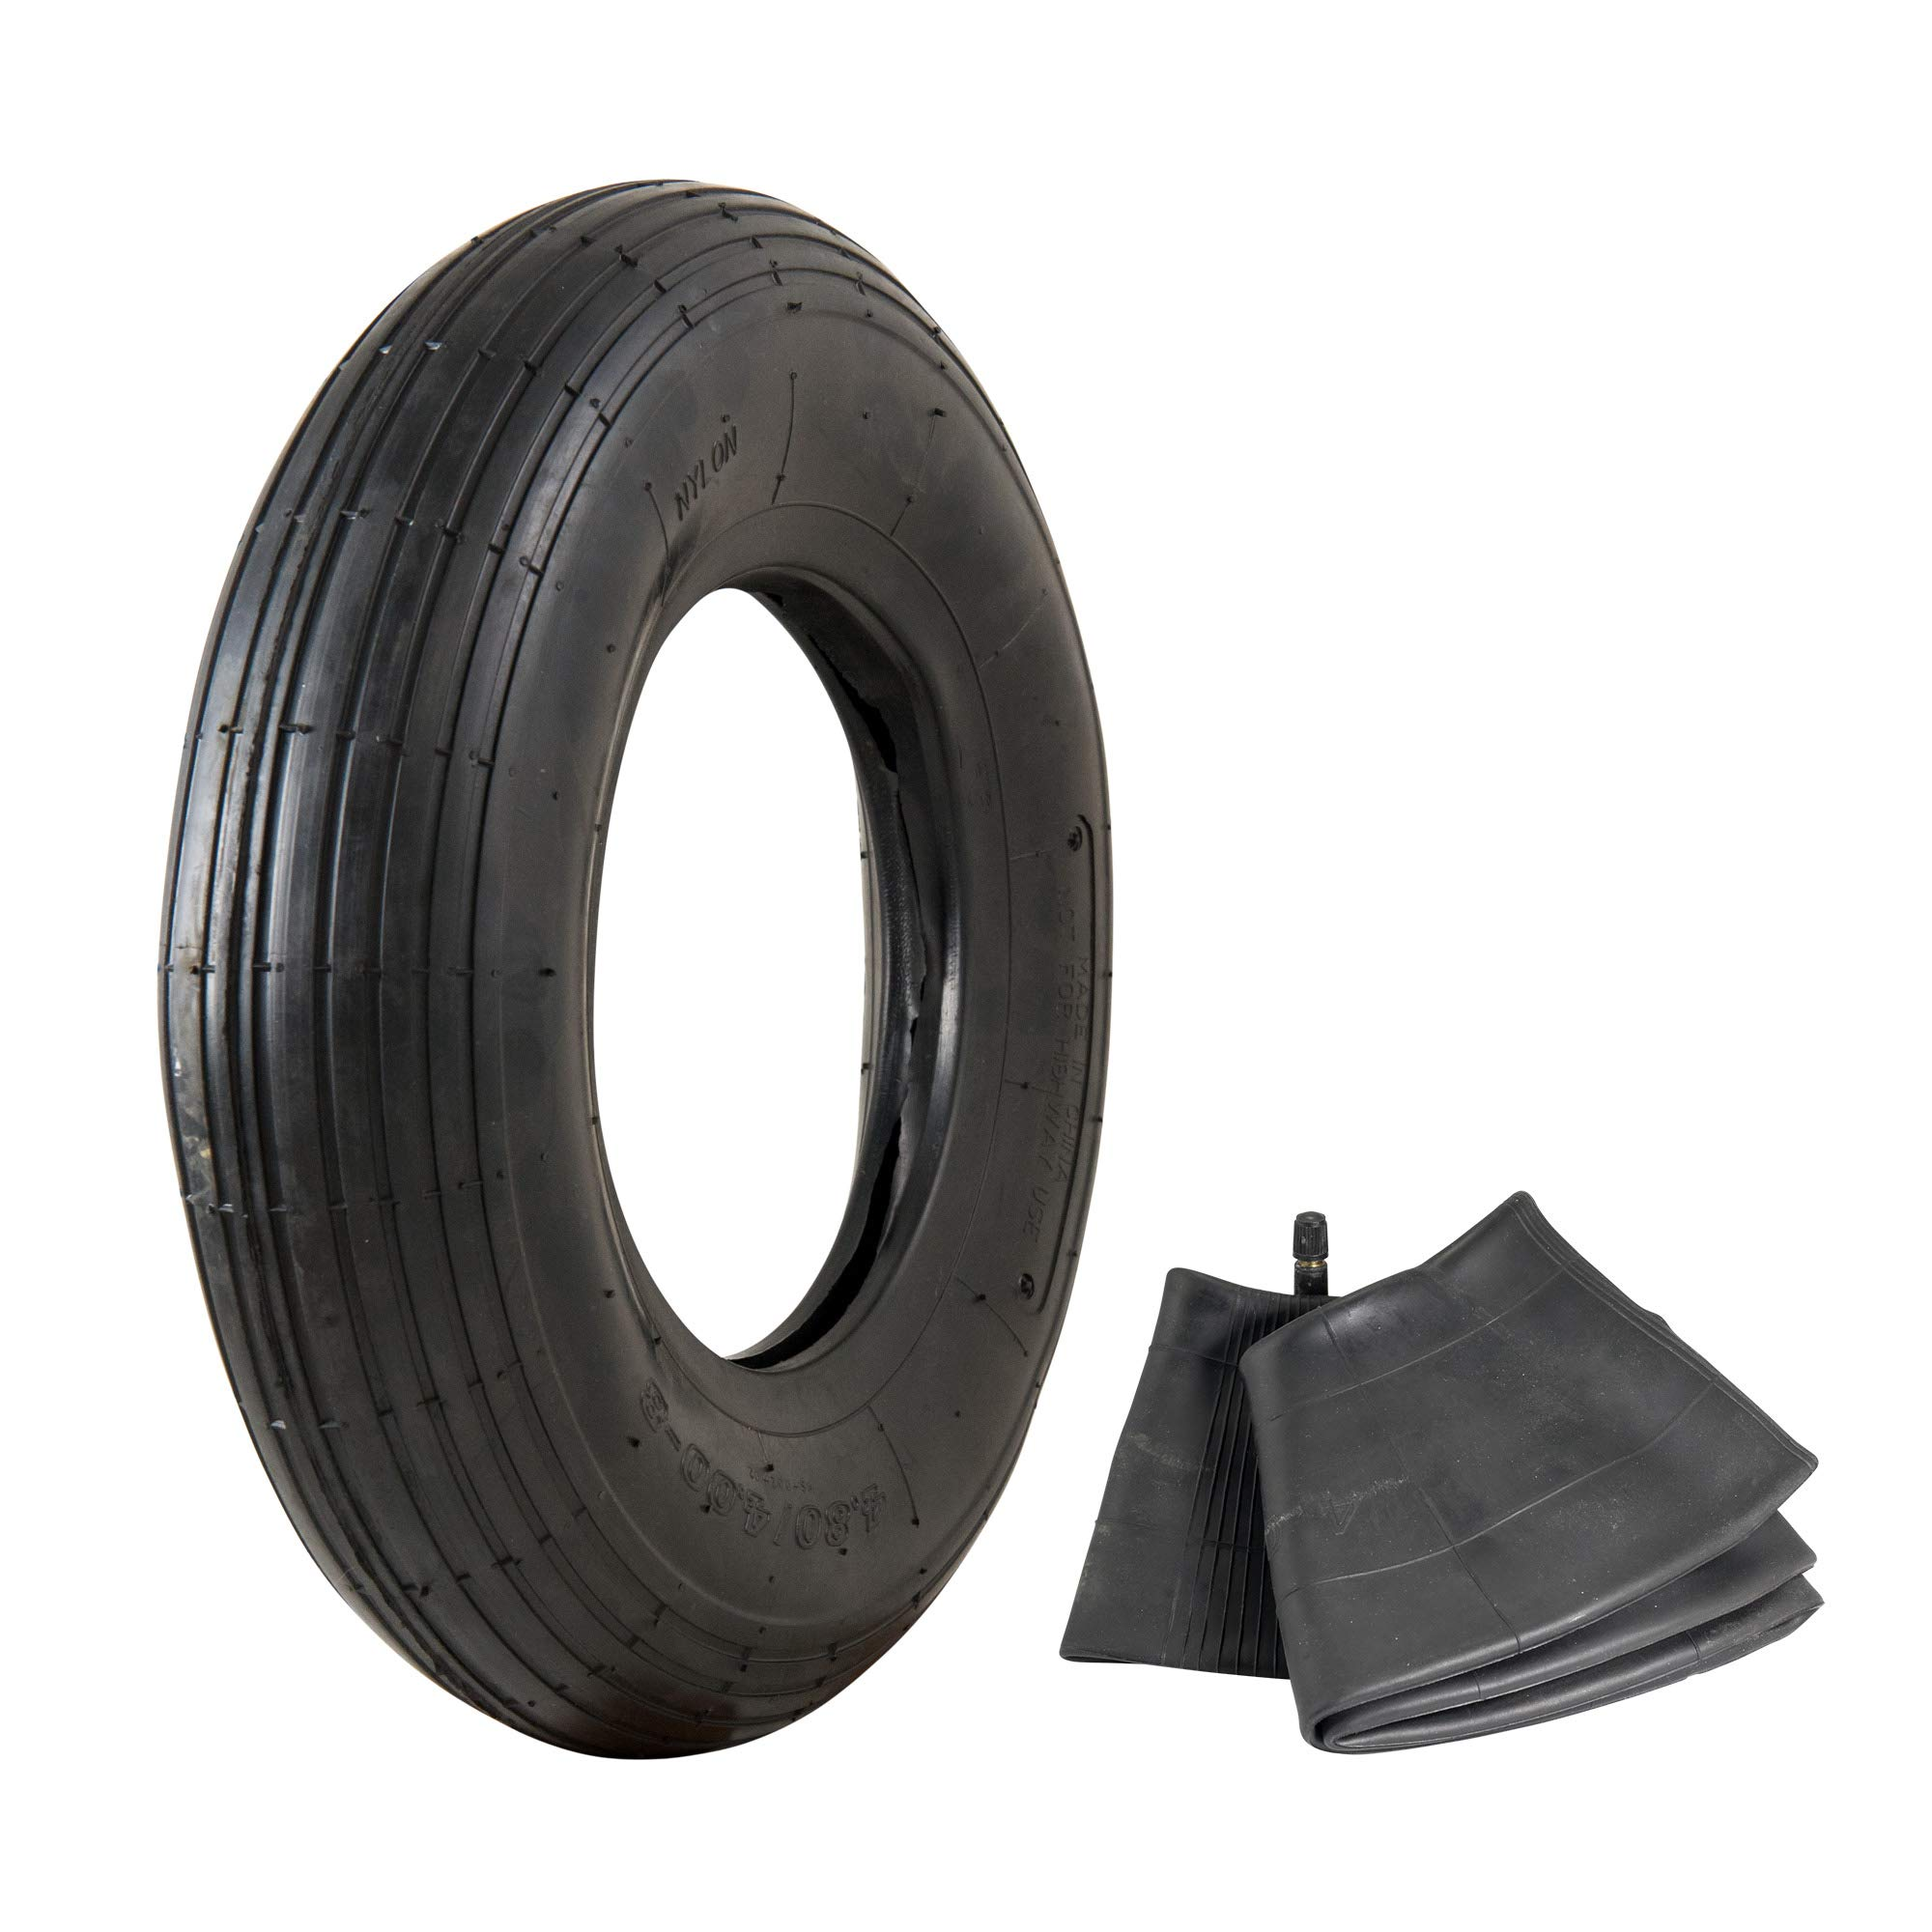 4.80/4.00-8'' Replacement Pneumatic Wheel Tire and Tube